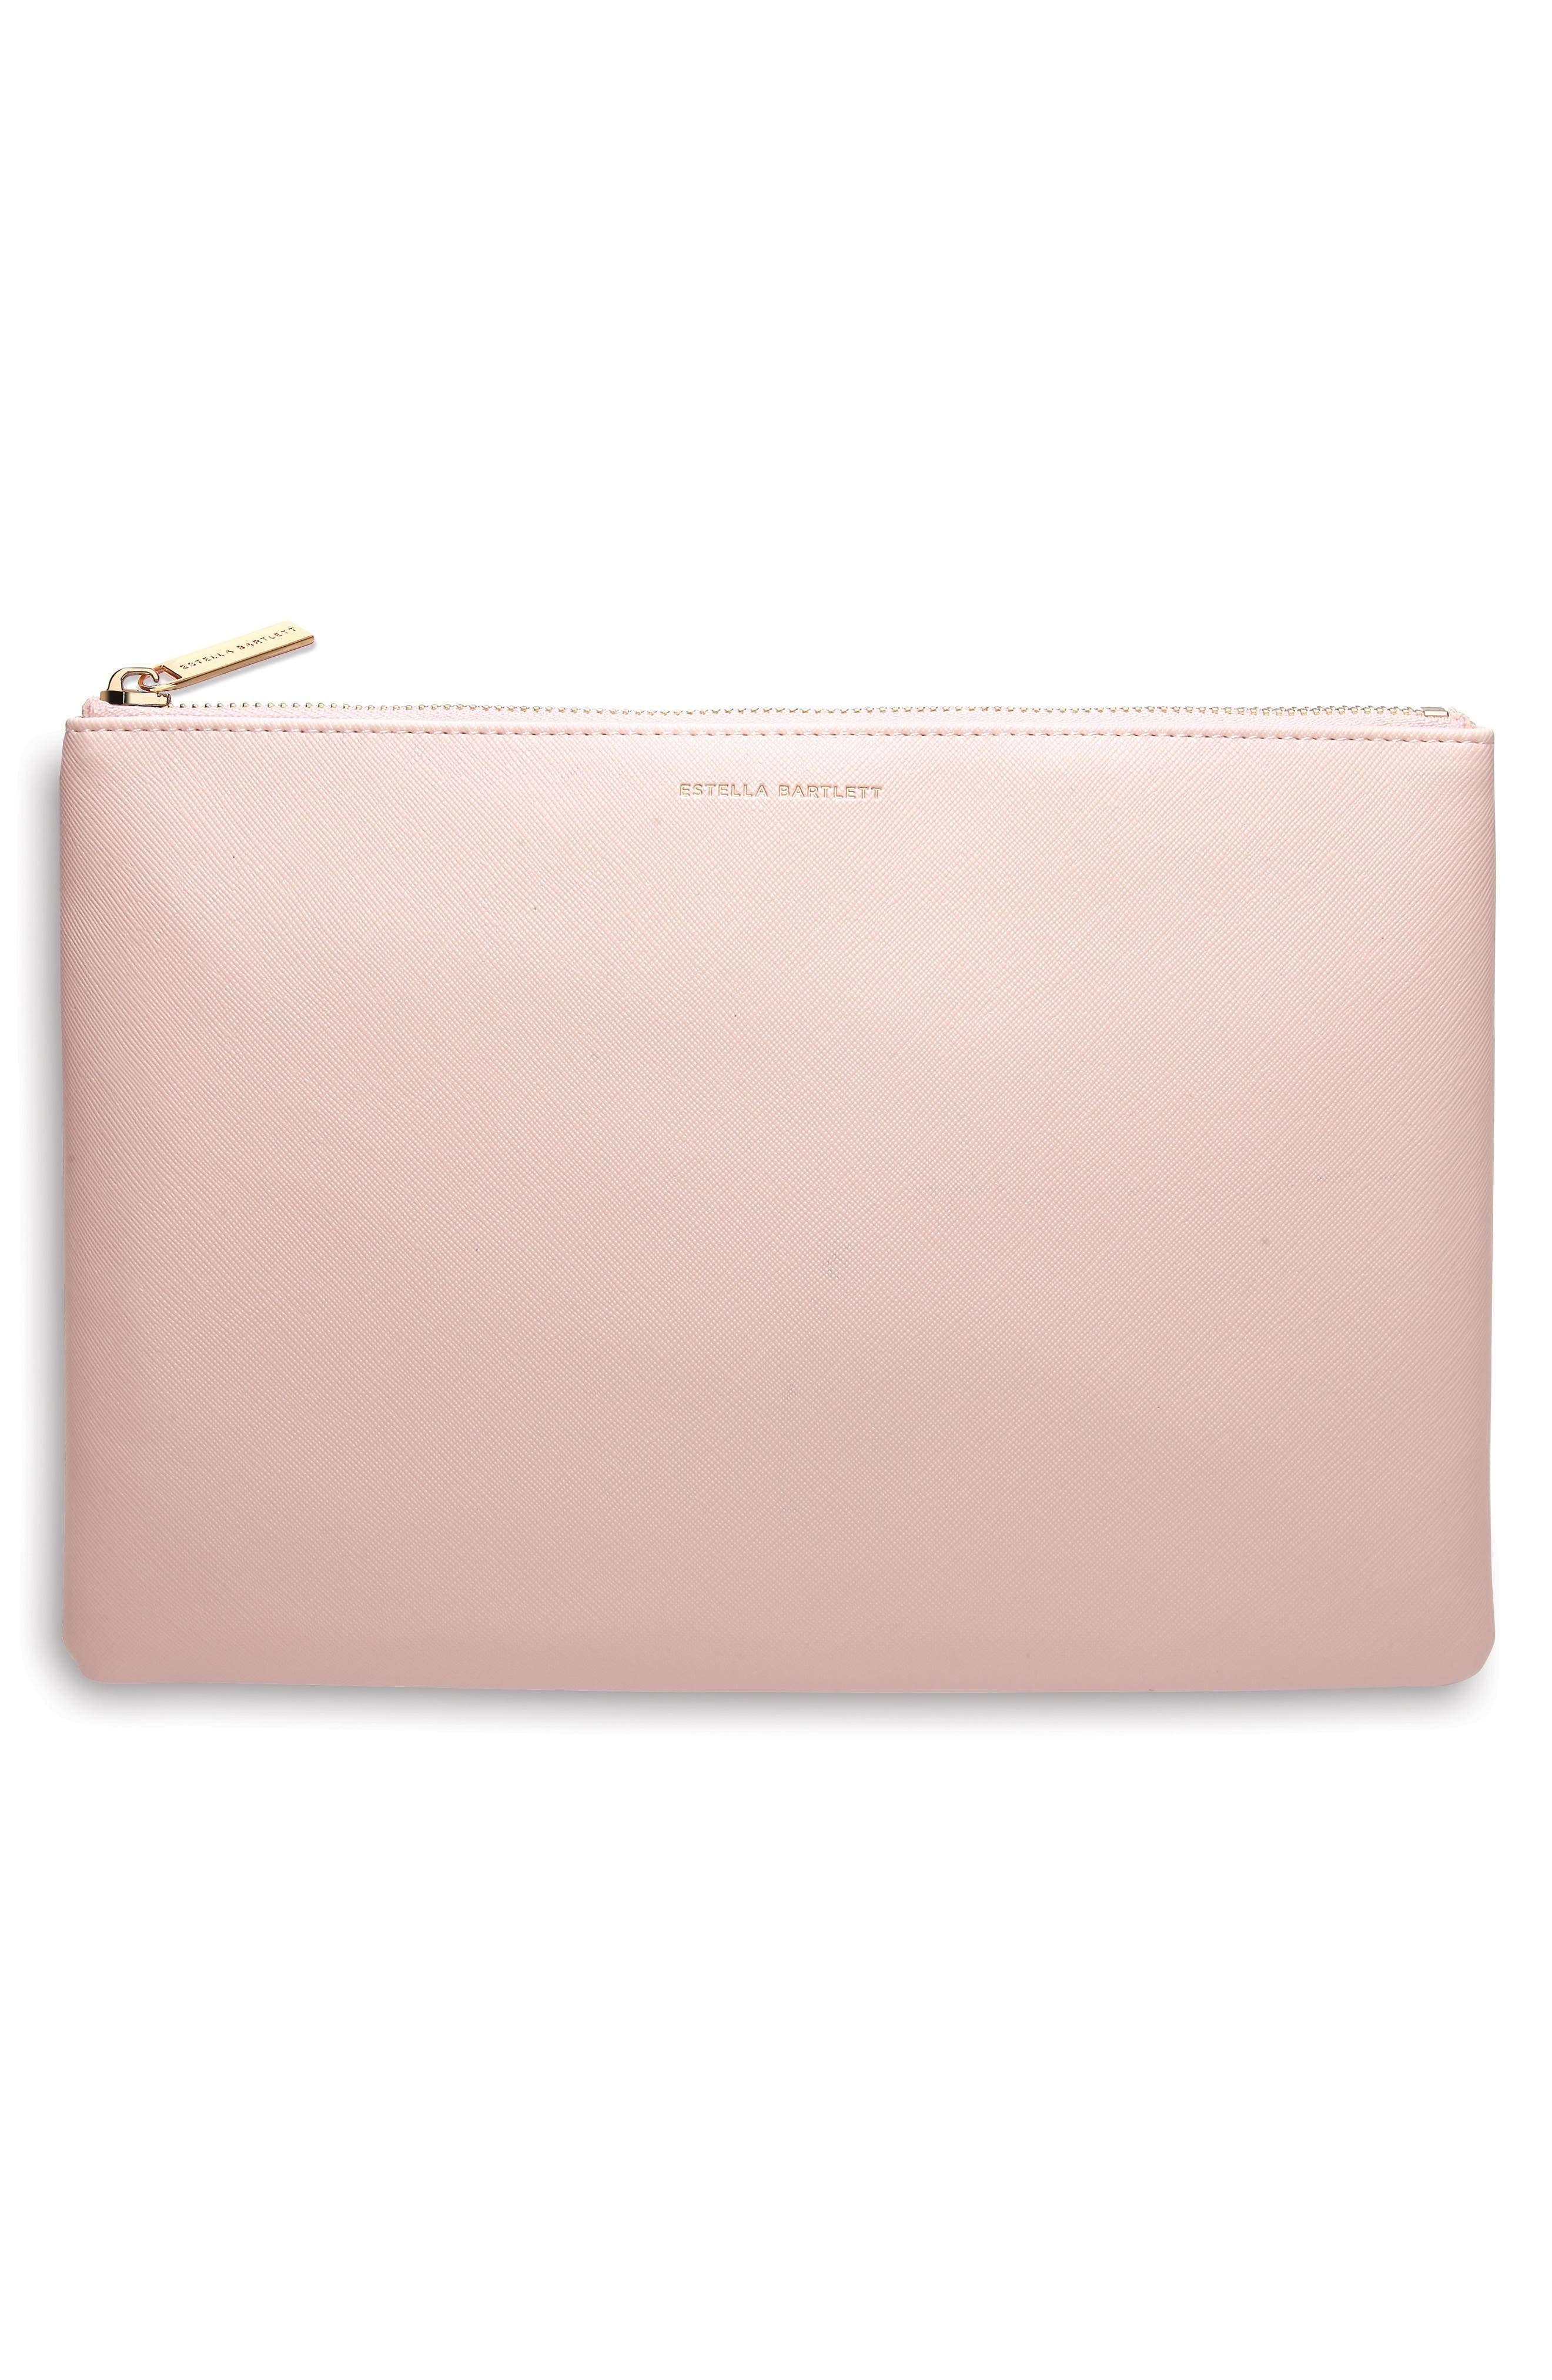 Alternate Image 1 Selected - Estella Bartlett Always Be on the Lookout Faux Leather Pouch